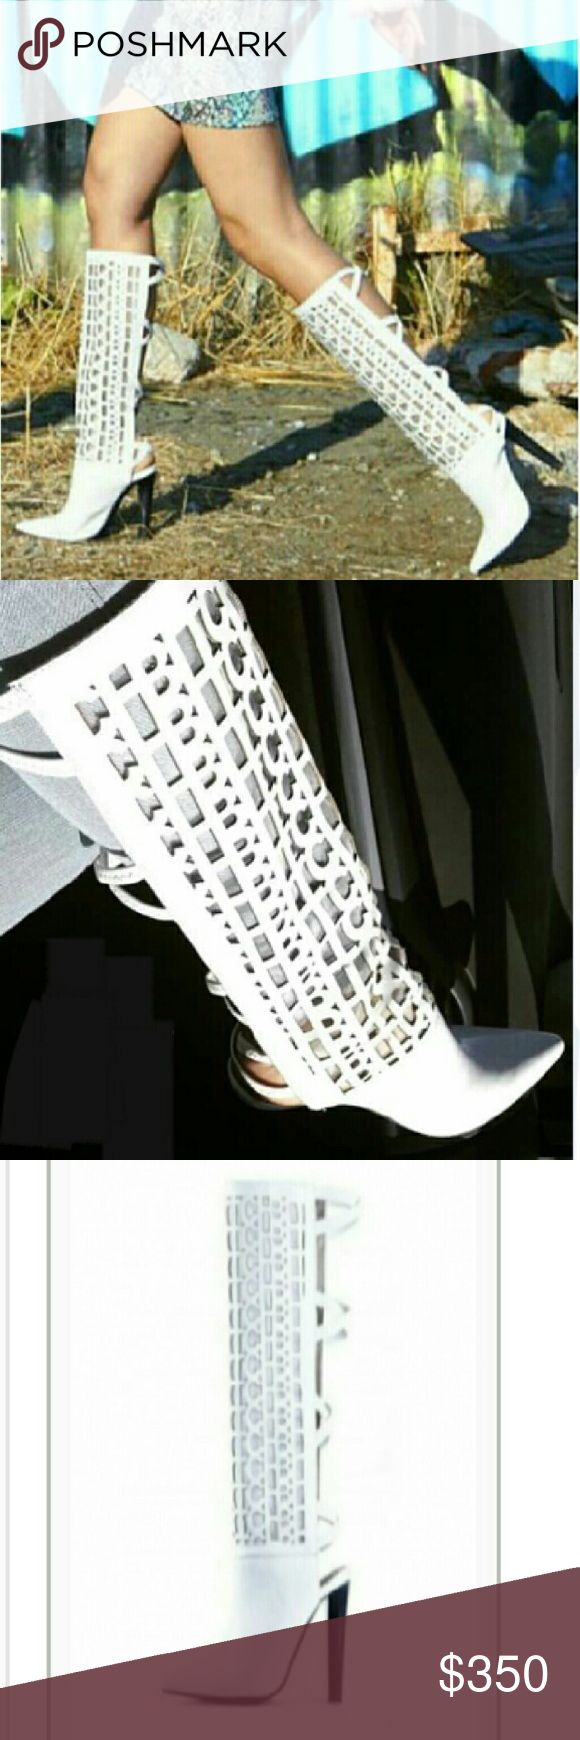 """JEFFREY CAMPBELL Leather """"Major Bitch"""" Boots- NEW ***NO TRADES WHATSOEVER***  NOT FOR THE FAINT OF HEART.  These boots have """"Bitch"""" written all over them, literally. Rock star style white laser cut leather over mesh allows your skin to breathe in these. Lettering spells BITCH. Open back with elasticized leather  crossed straps. Will accommodate someone with a regular or wide calf. BRAND NEW, NEVER WORN SIZE: 9 1/2 No original box but will be shipped in a boot box with dust bag.  I work in…"""